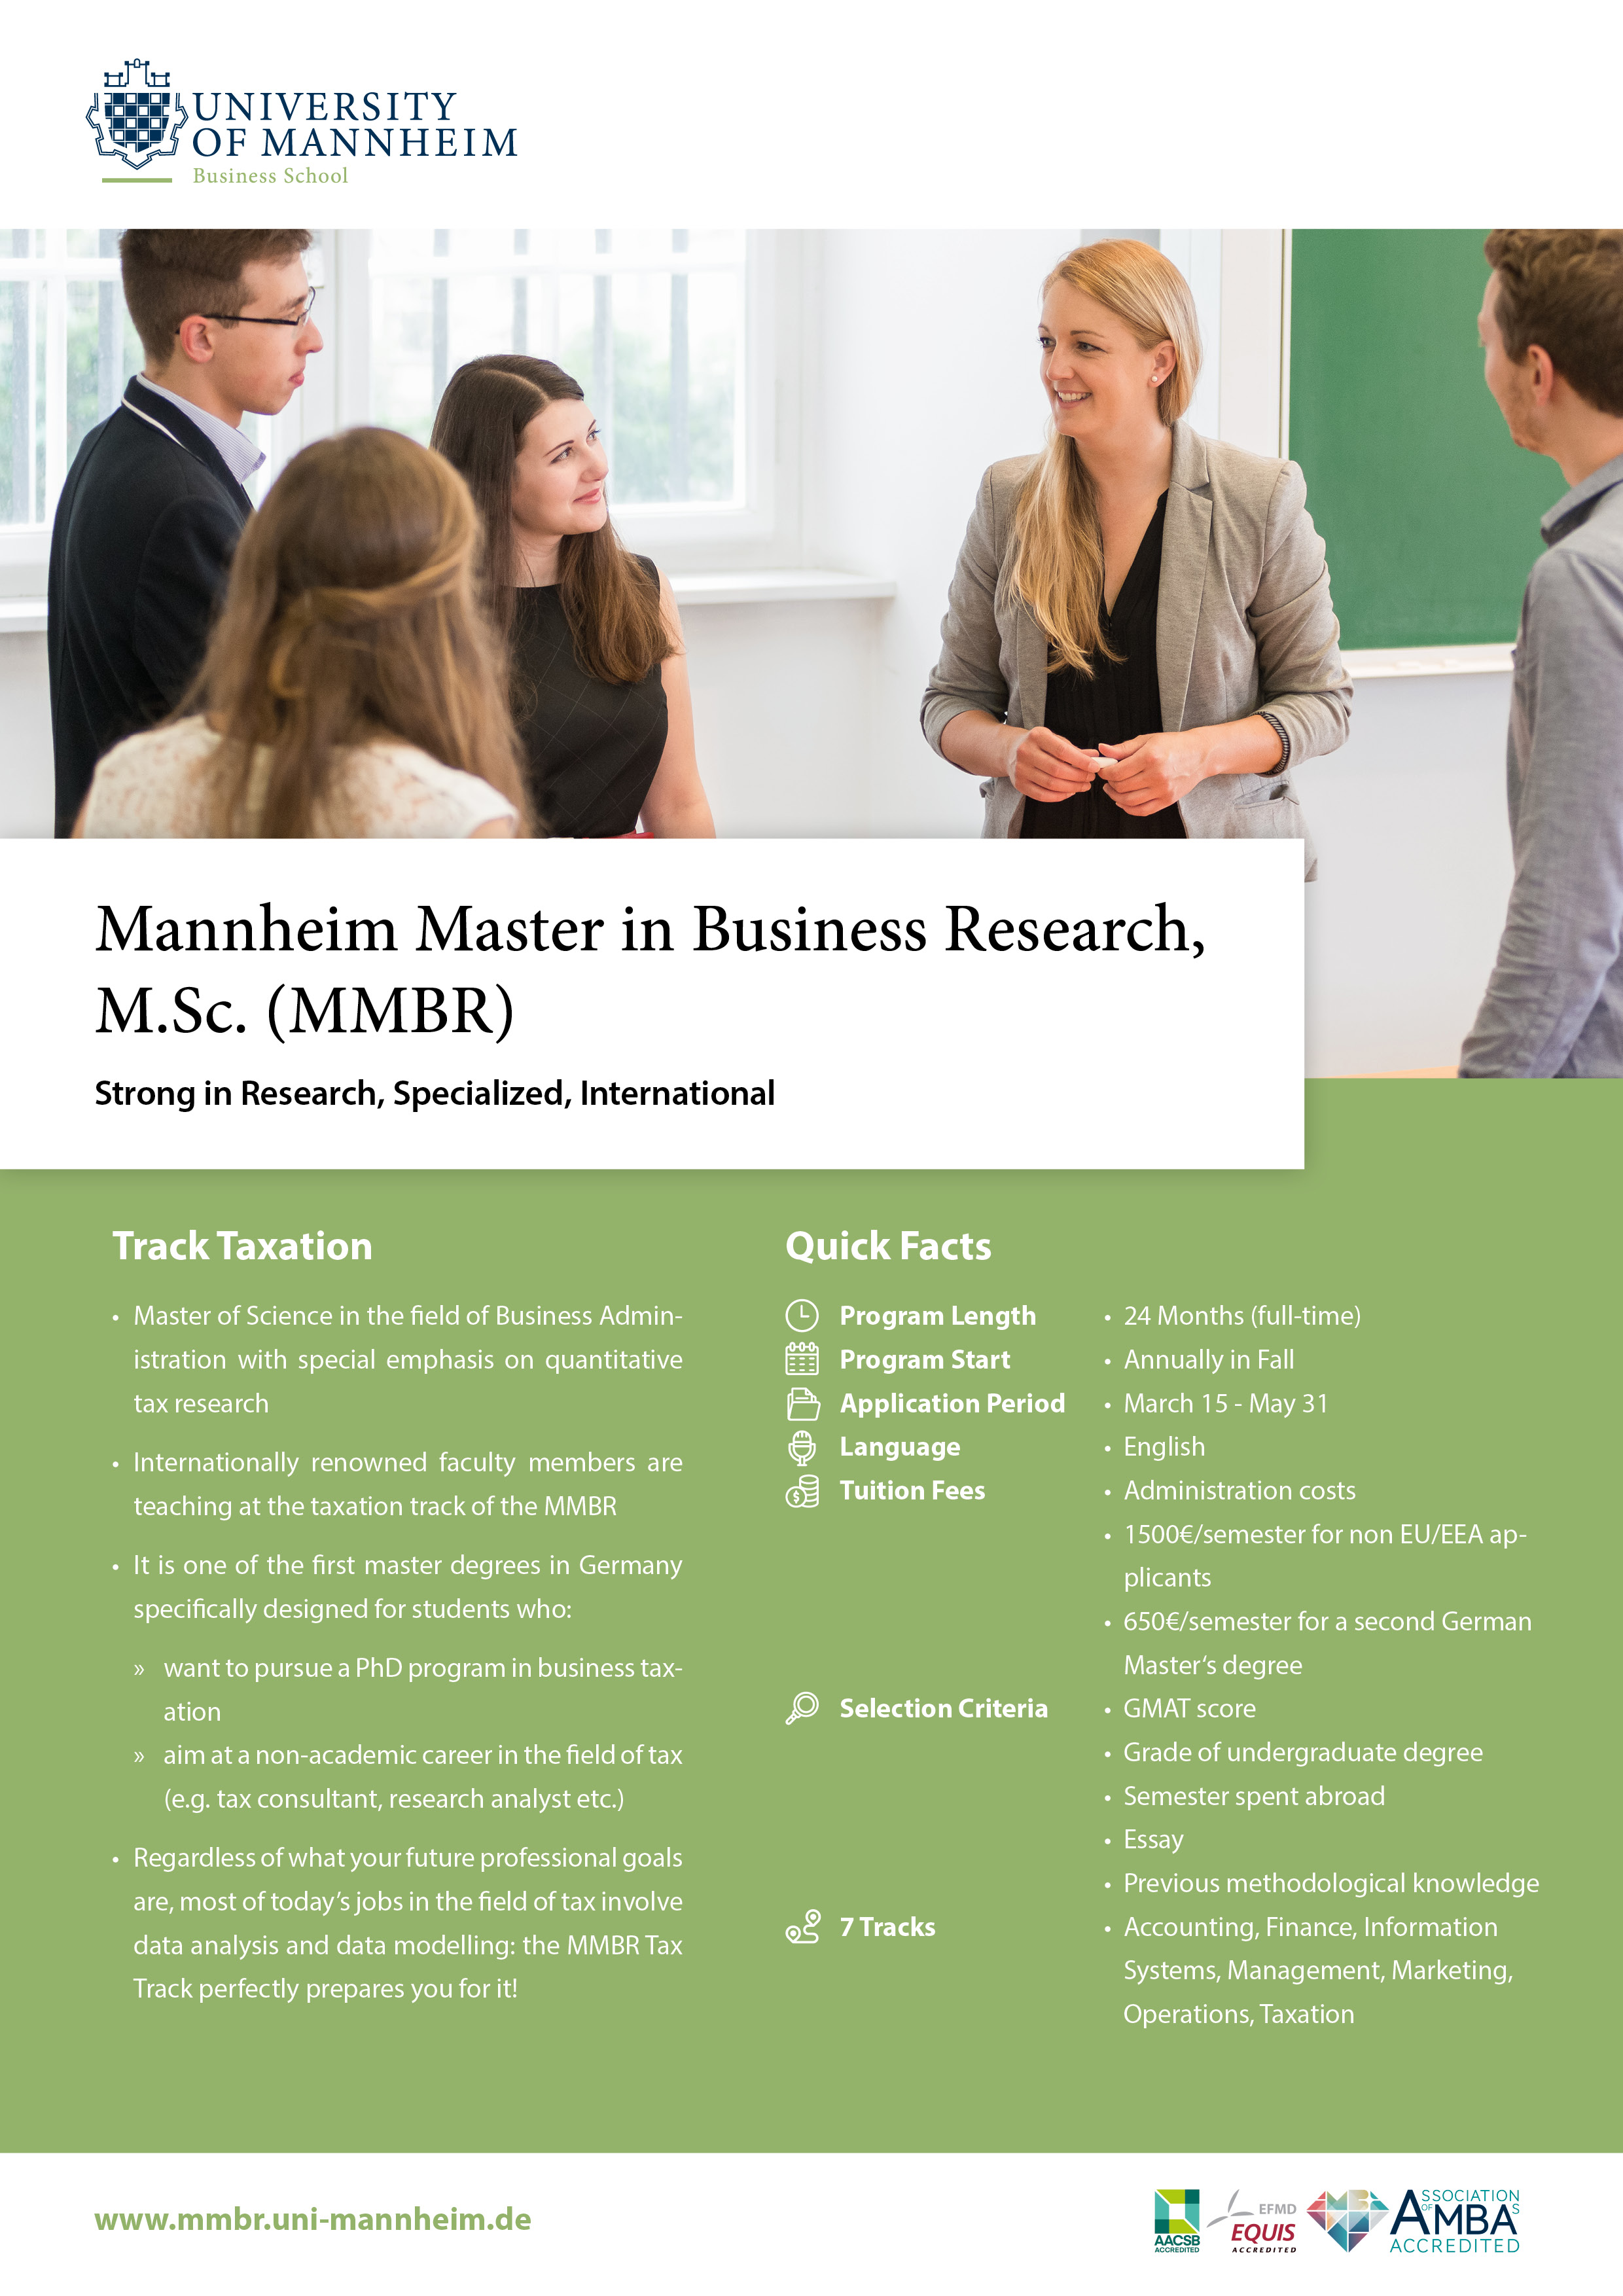 University of Mannheim Business School: Mannheim Master in Business